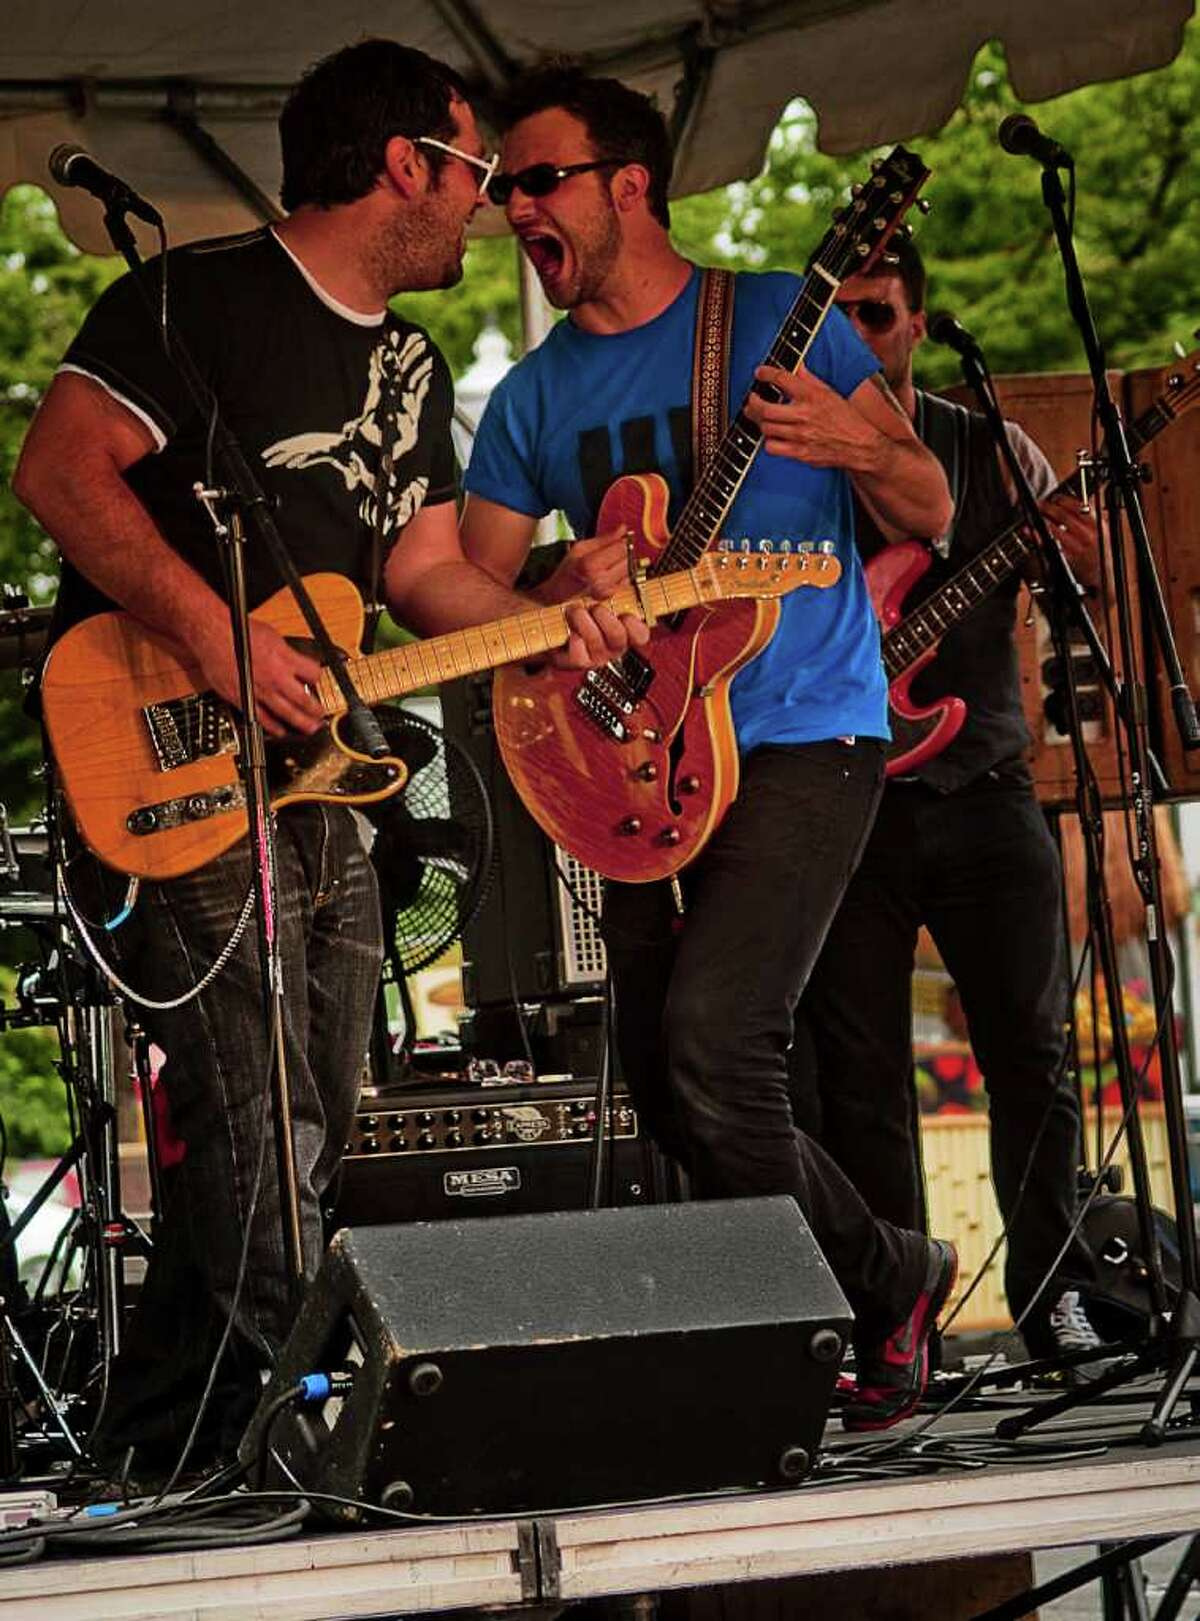 Stamford's Bandapalooza went off without a hitch on June 16.